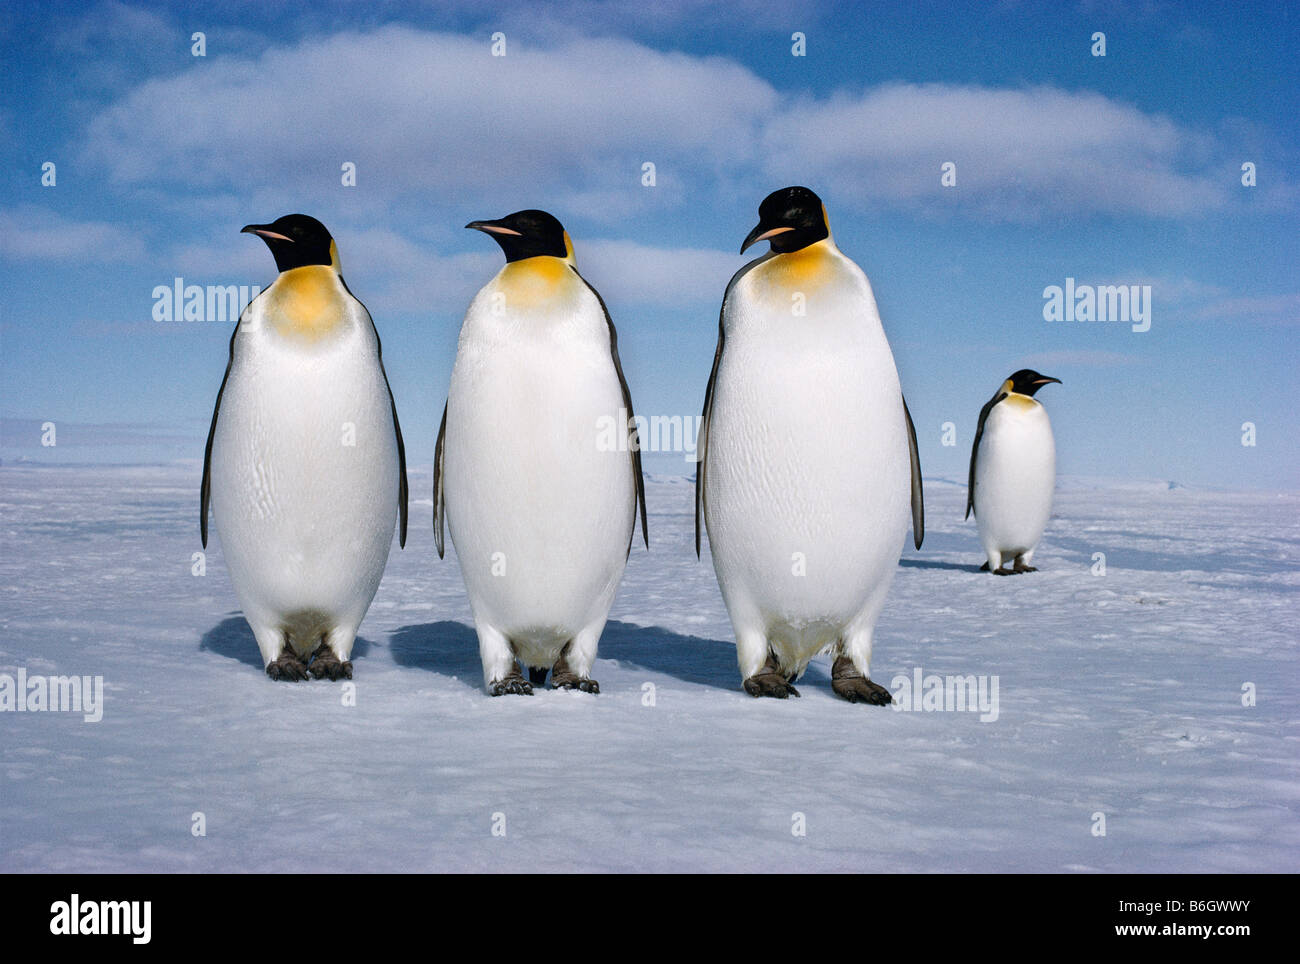 Aptenodytes forsteri, Emperor penguins, The male Emperor penguin holds the single egg on its feet for two winter - Stock Image